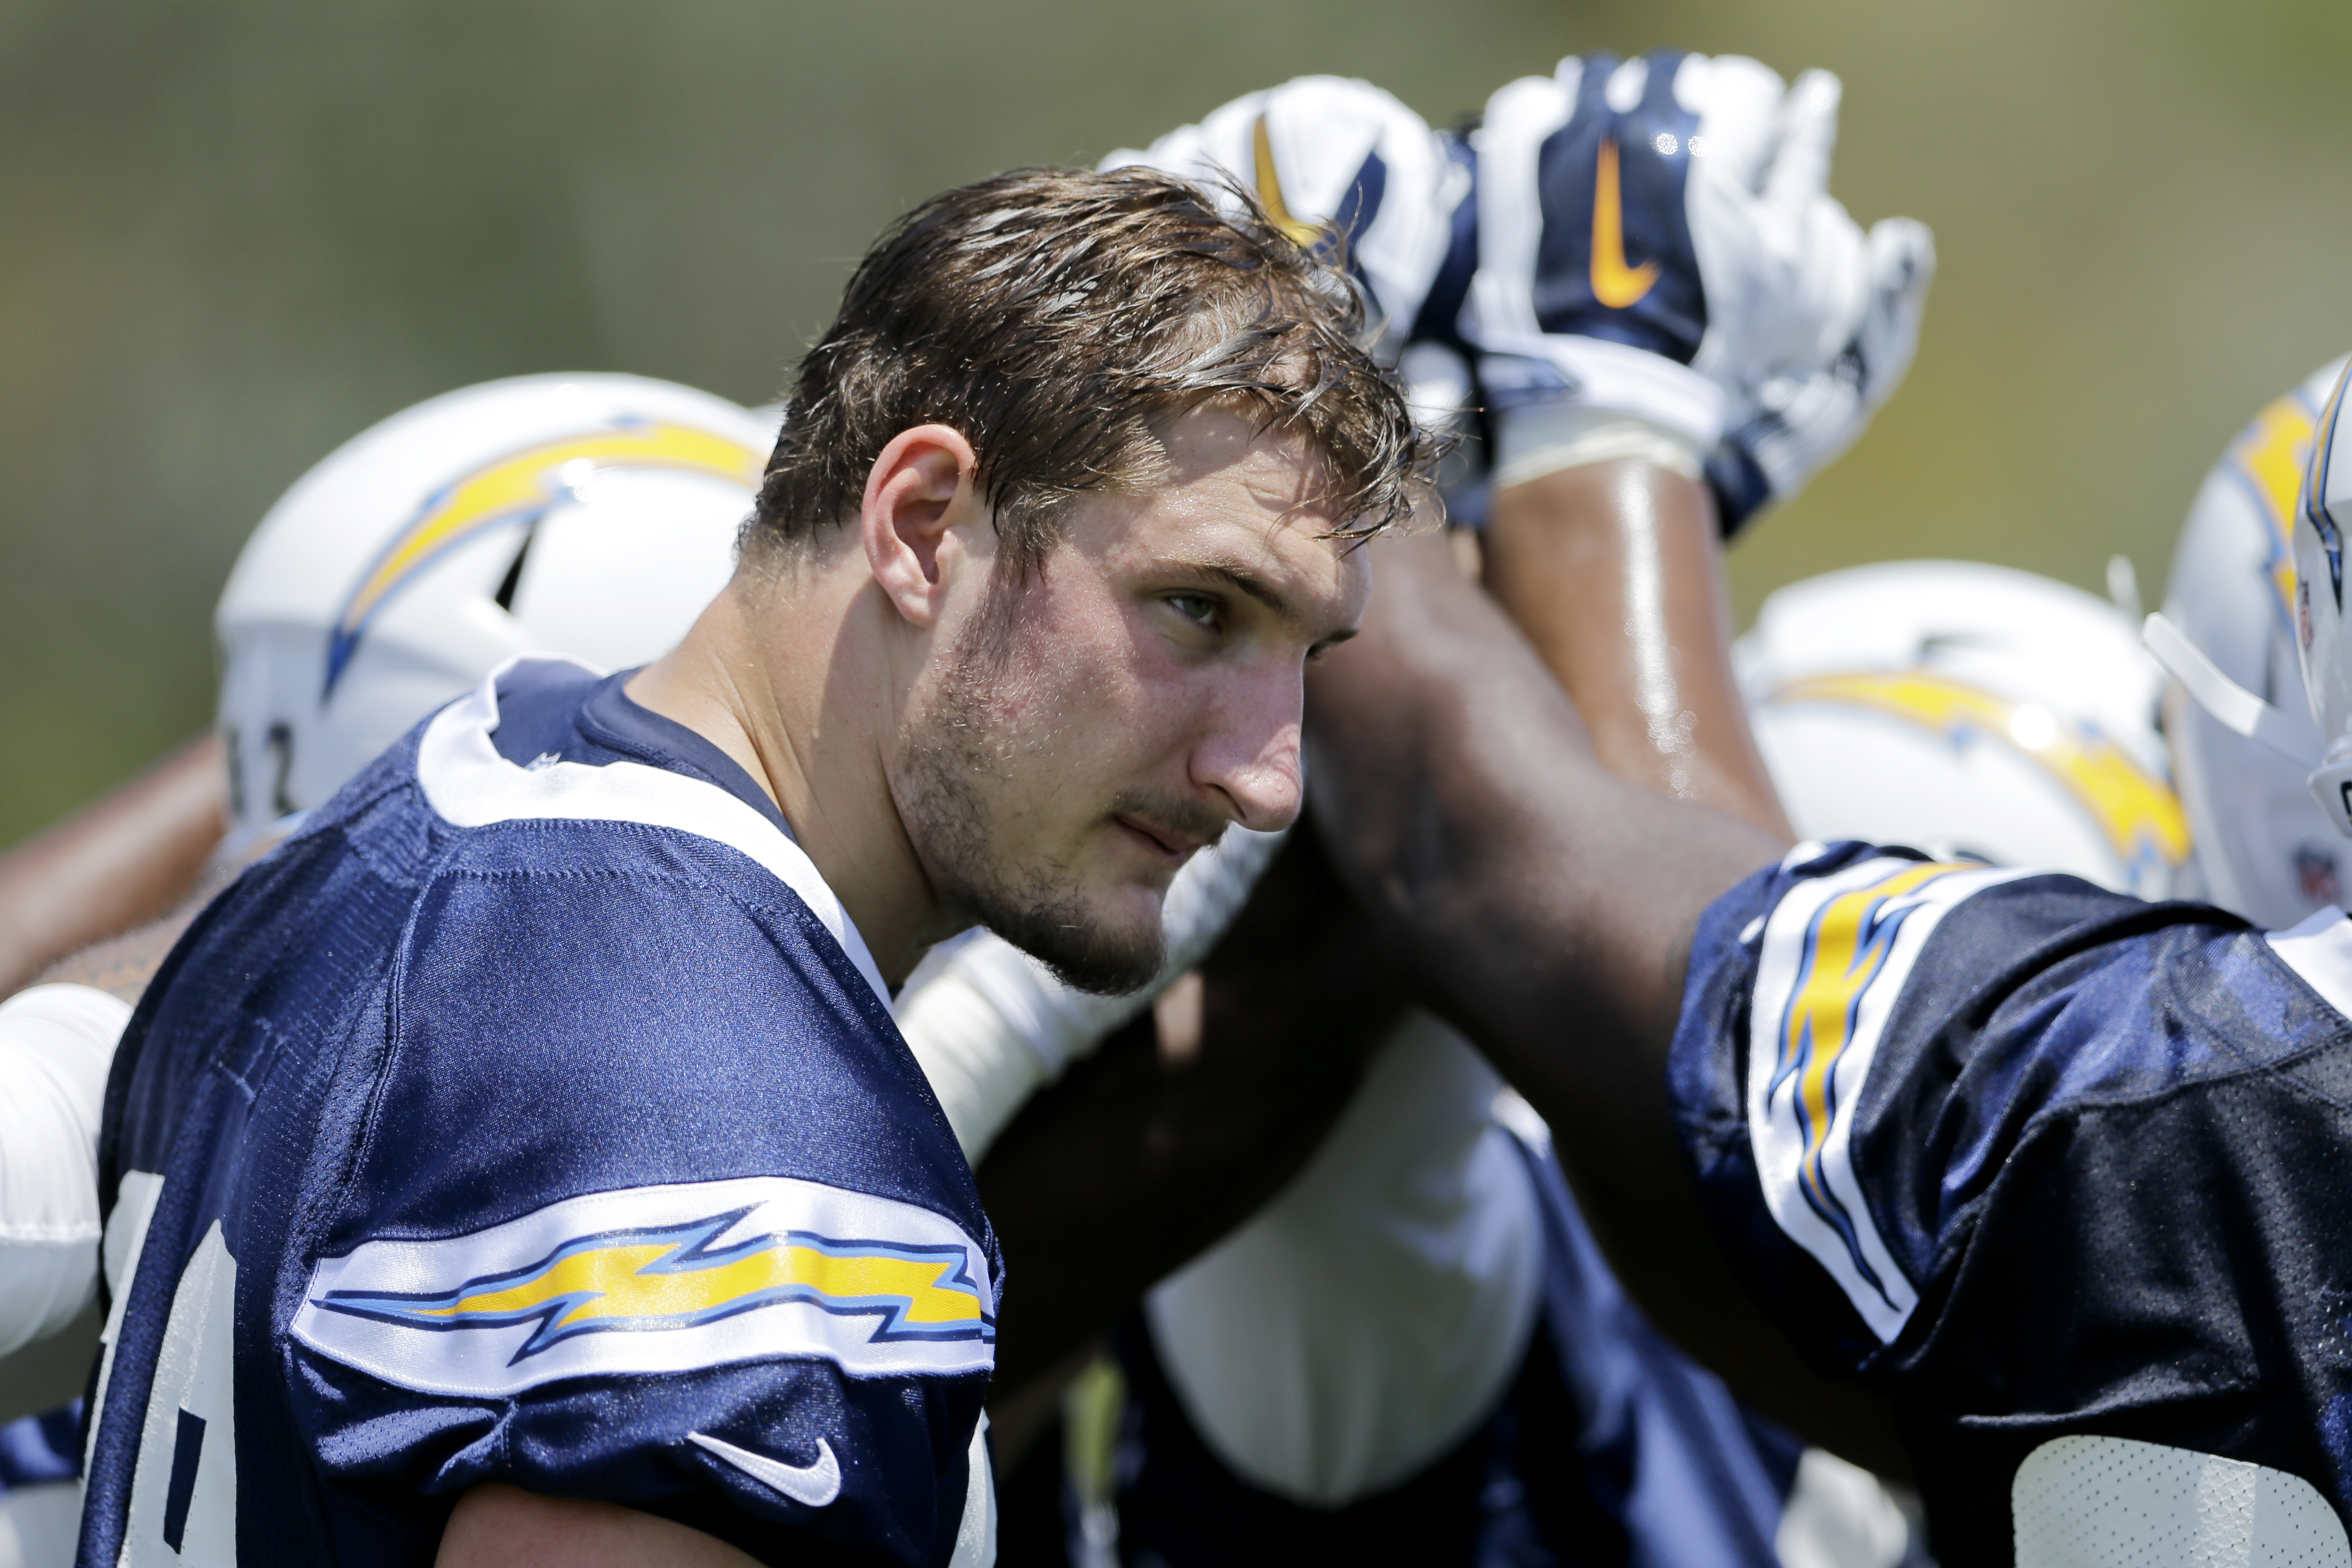 San Diego Chargers rookie defensive end Joey Bosa touches hands with others on the Chargers defense during an NFL football practice Monday, June 6, 2016, in San Diego. (AP Photo/Gregory Bull)